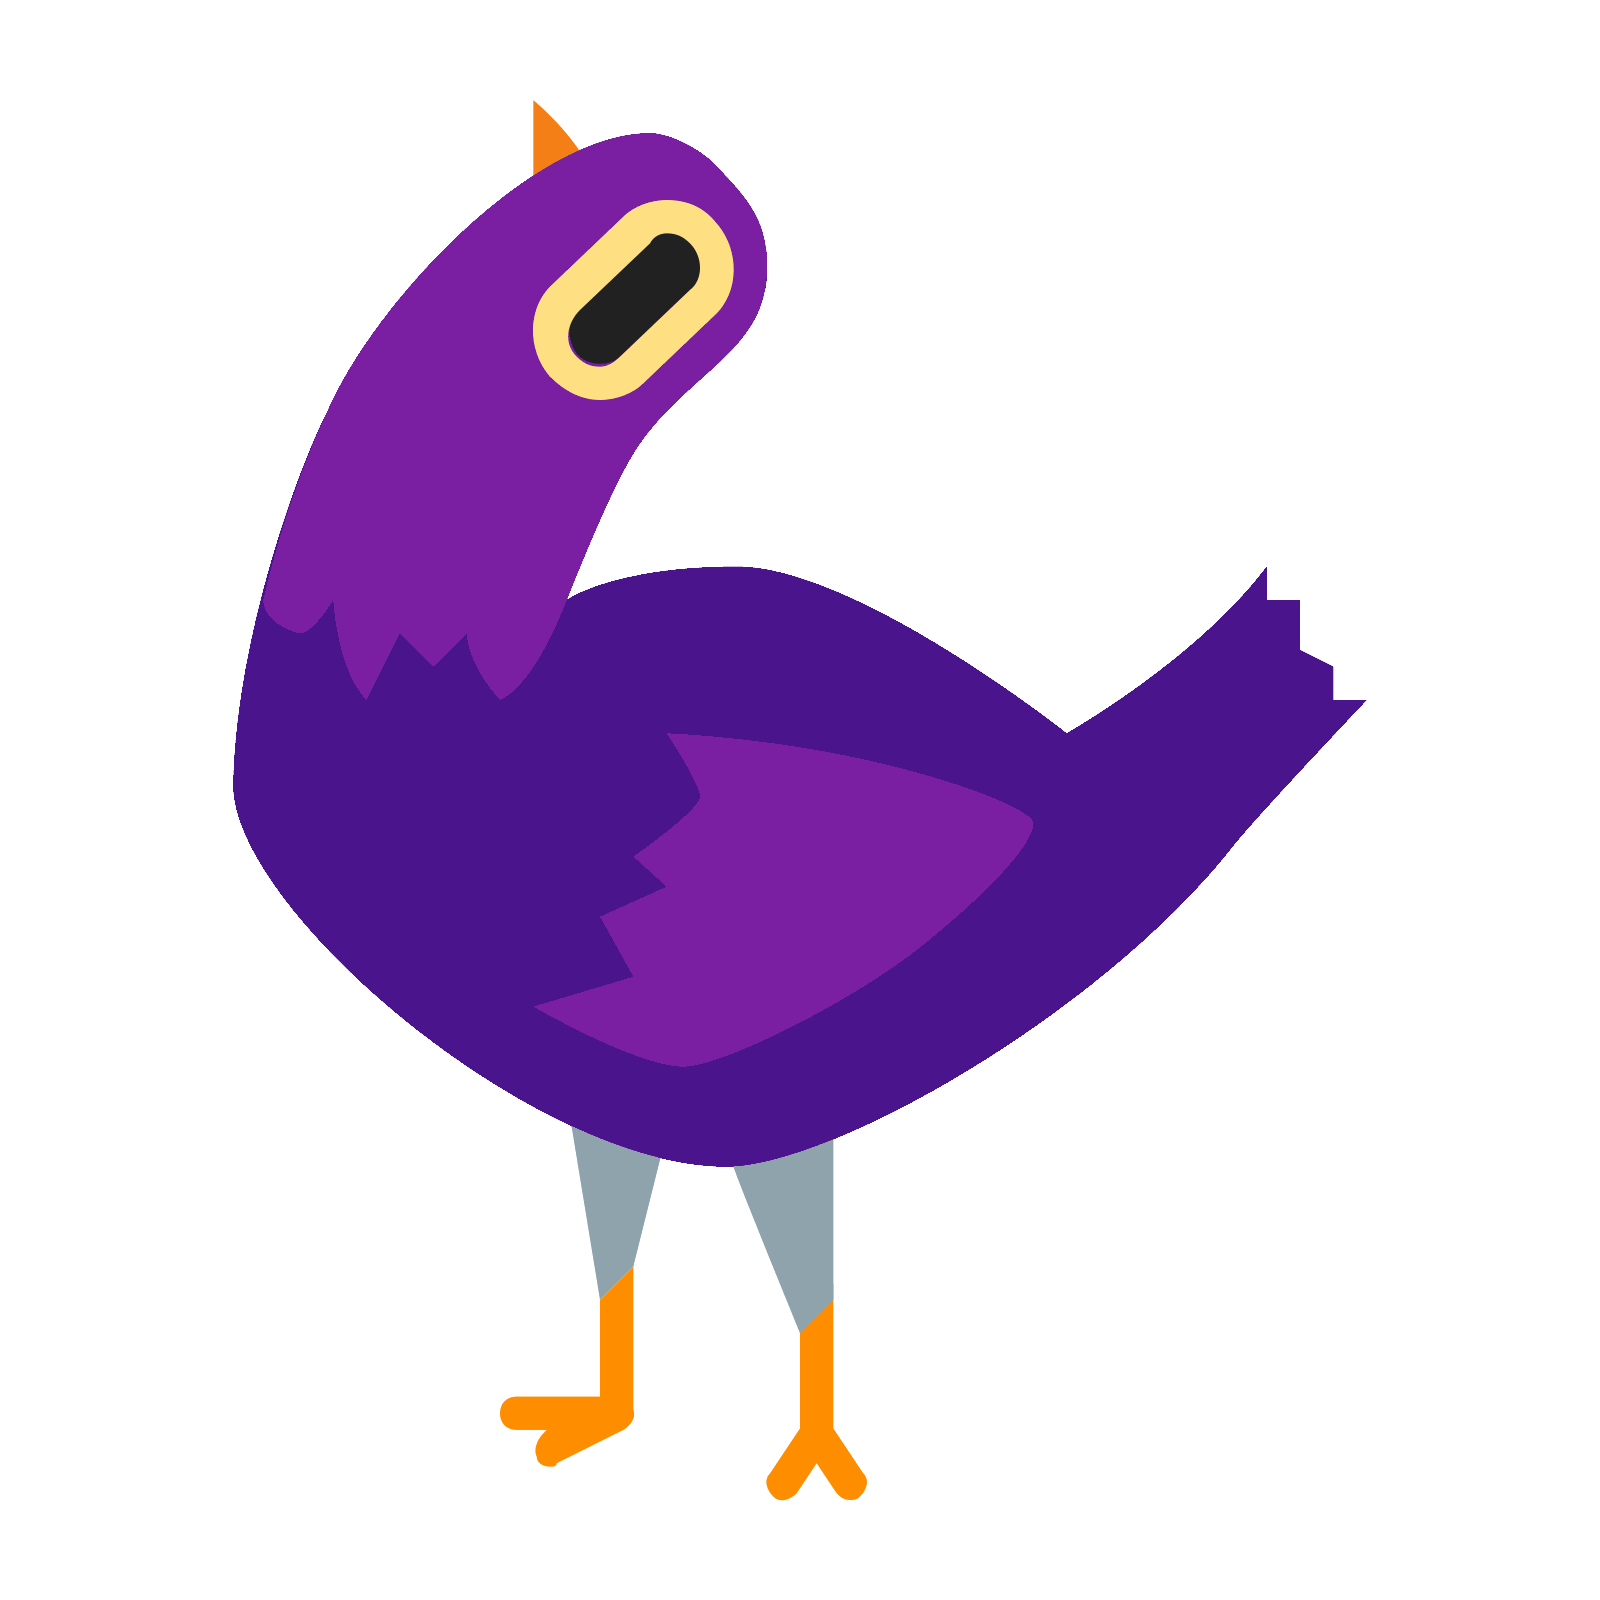 Trash dove png. Icon free download and